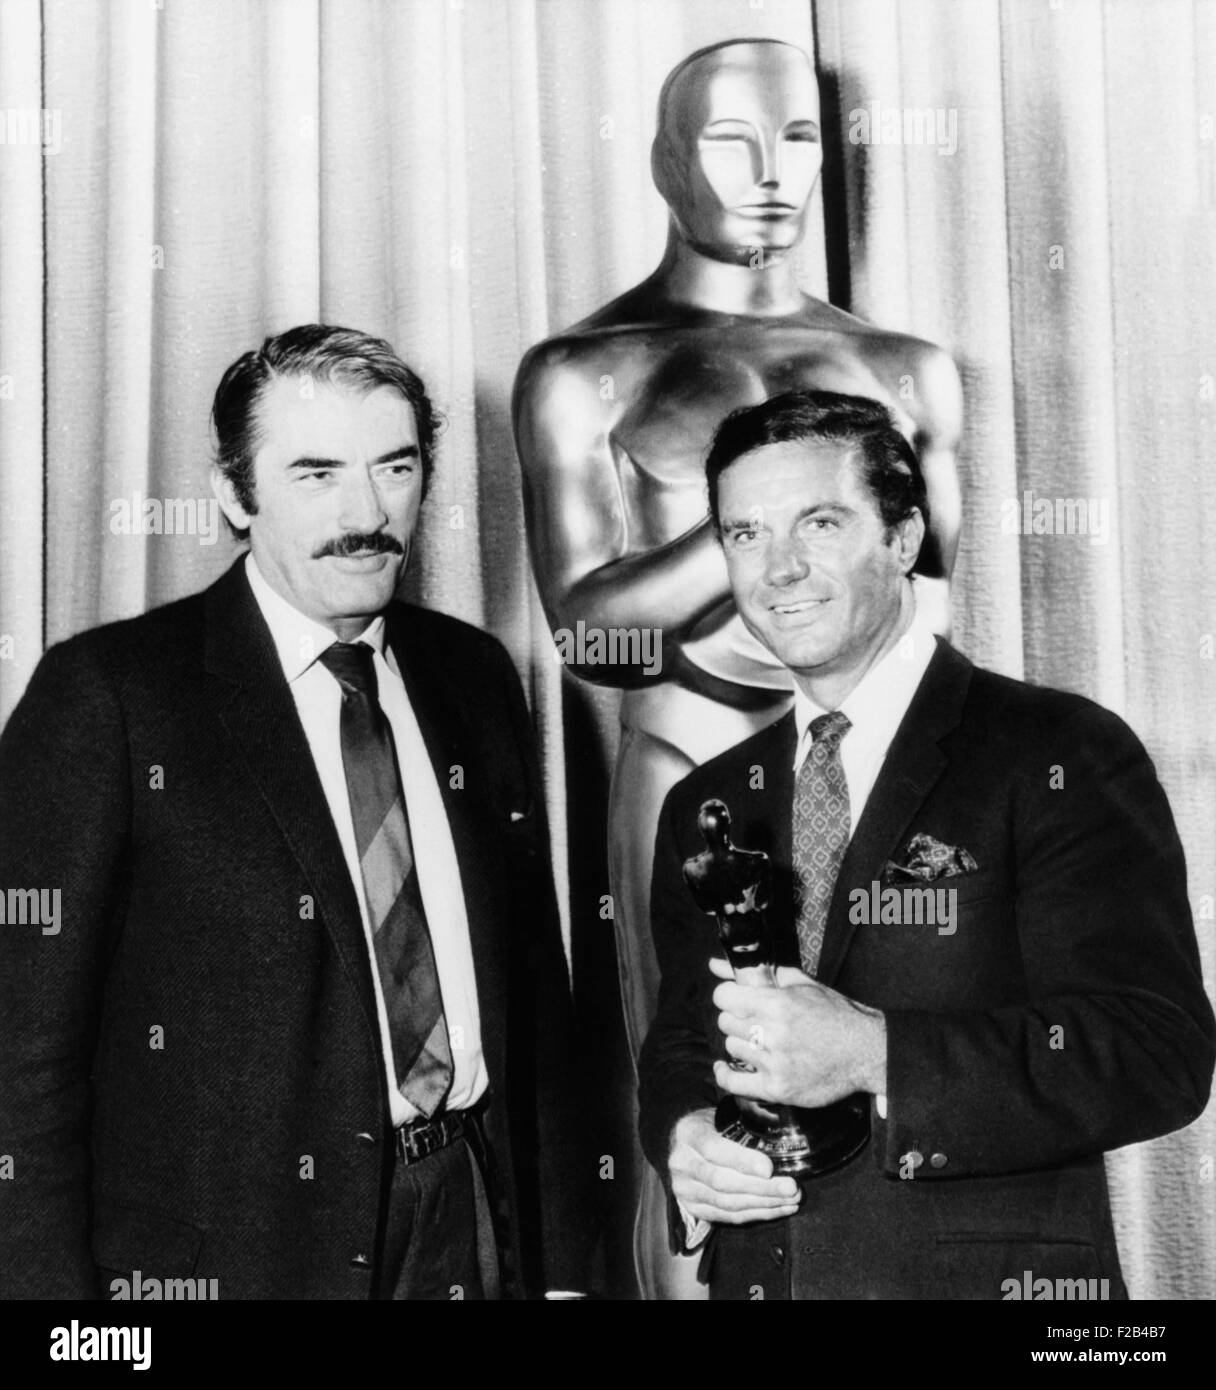 Cliff Robertson (right) receives a belated Best Actor 'Oscar' for his film 'Charley'. It as presented - Stock Image